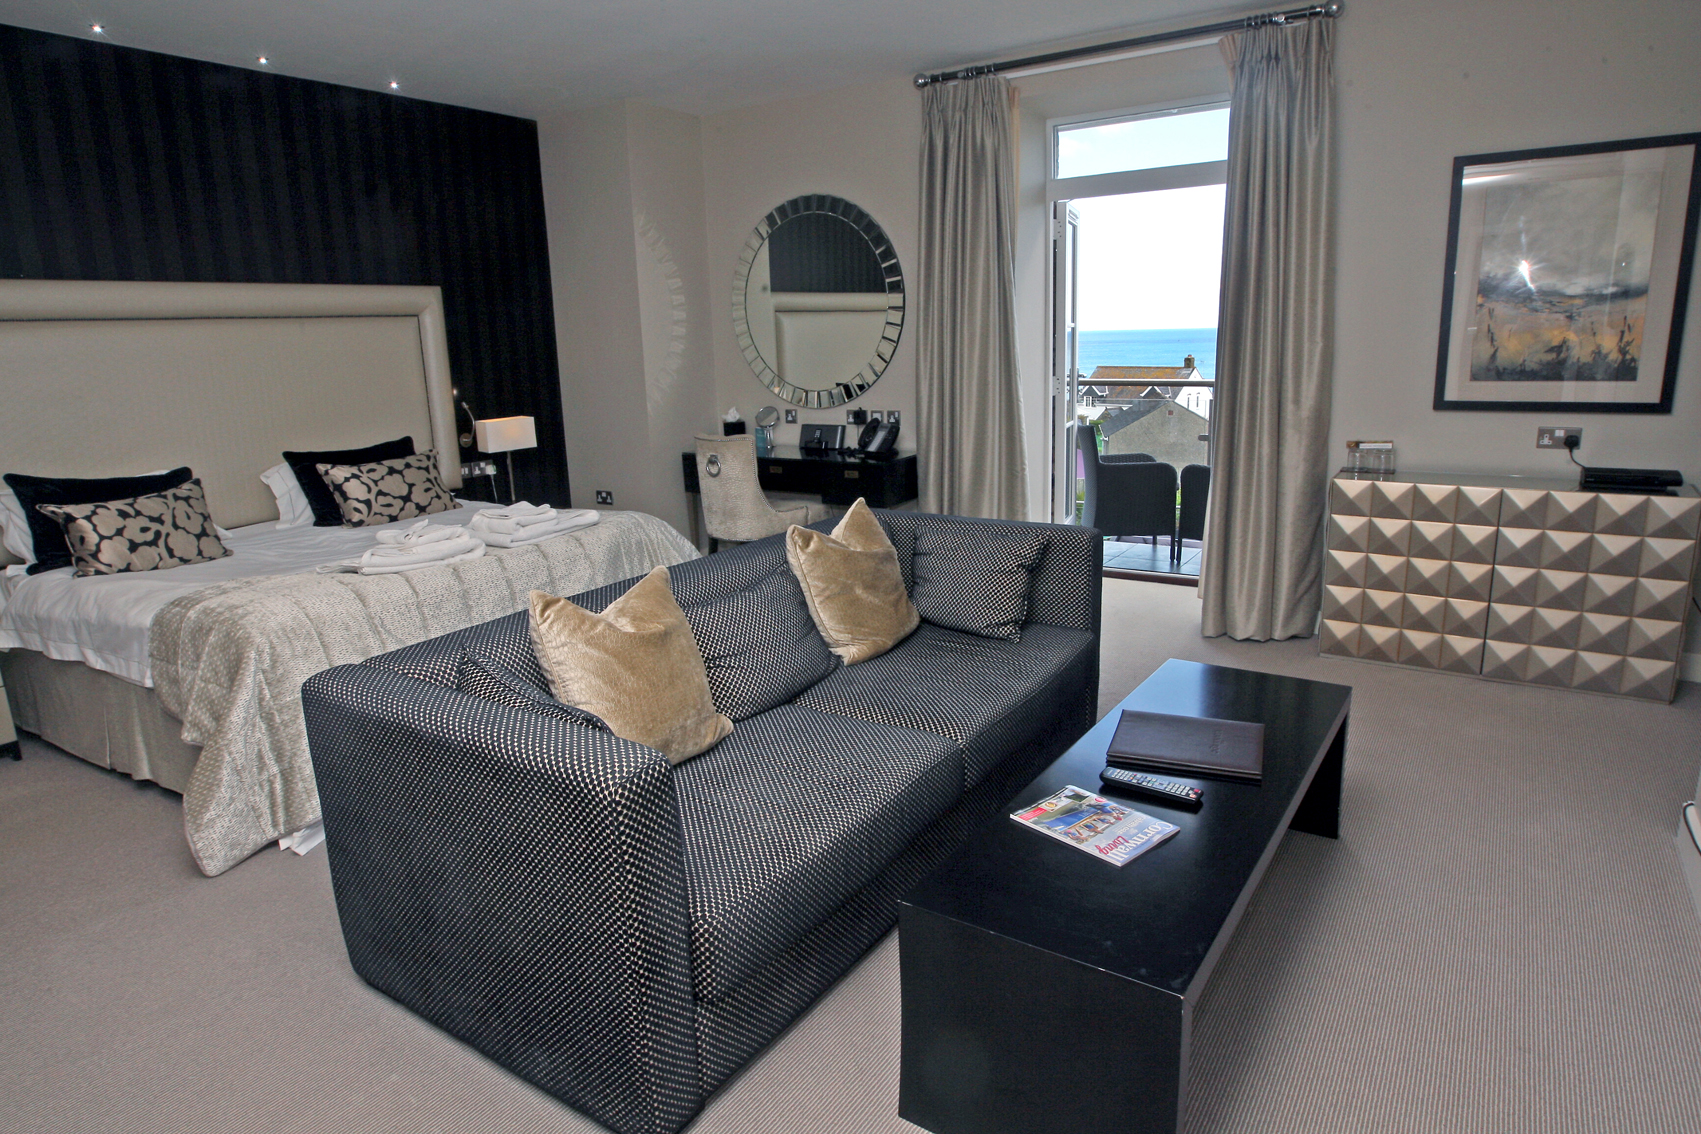 LlawnrocRm8c 16/06/2016 Room 8, a generous suite room with a balcony boasting sea views.